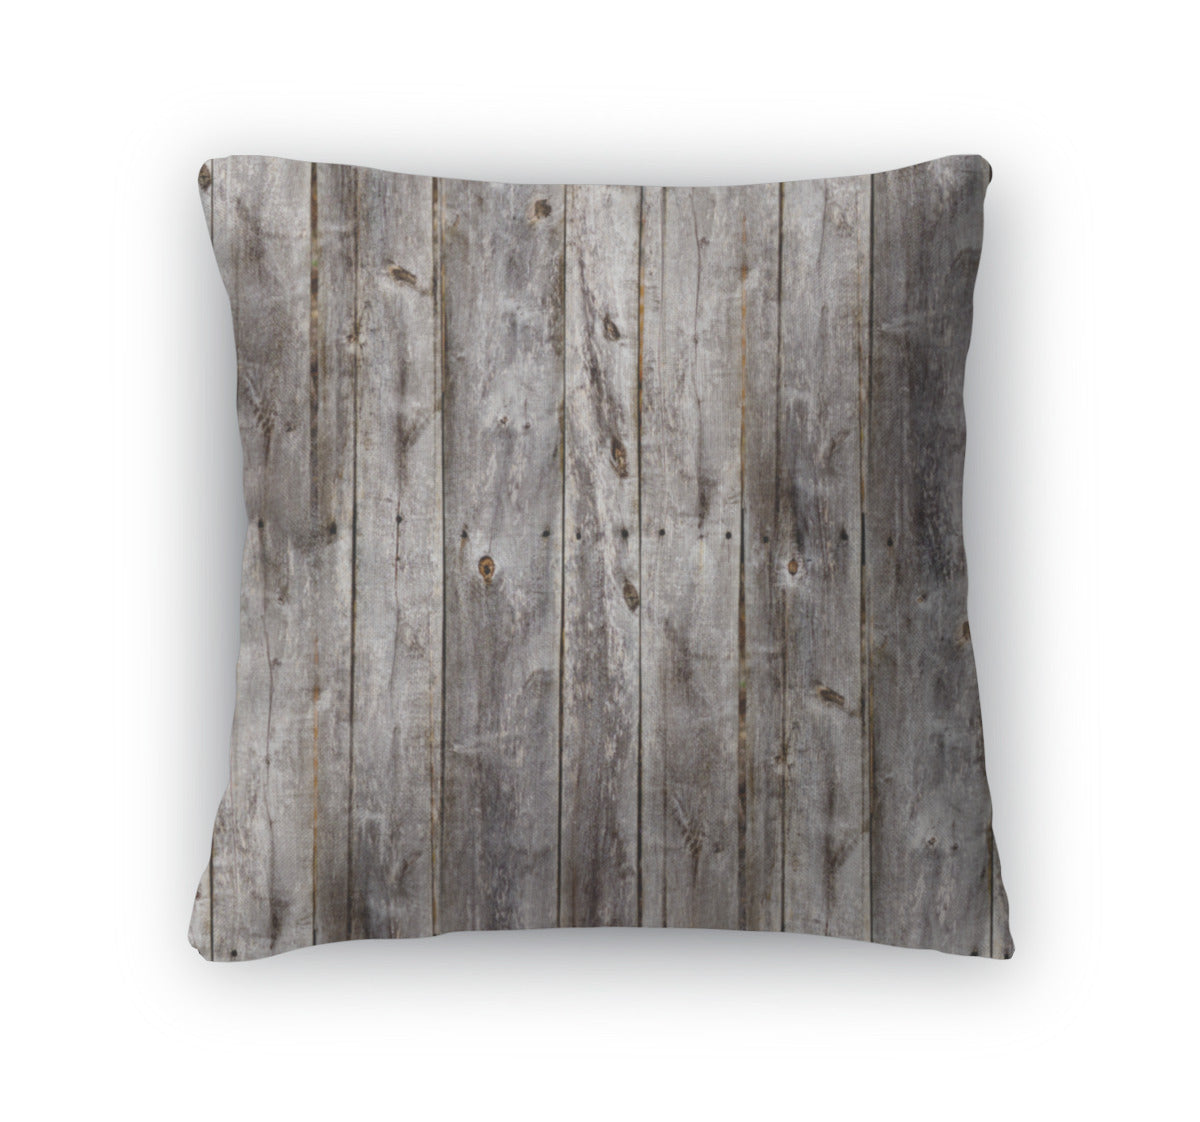 Throw Pillow, Old Gray Fence Boards Wood - fashionbests